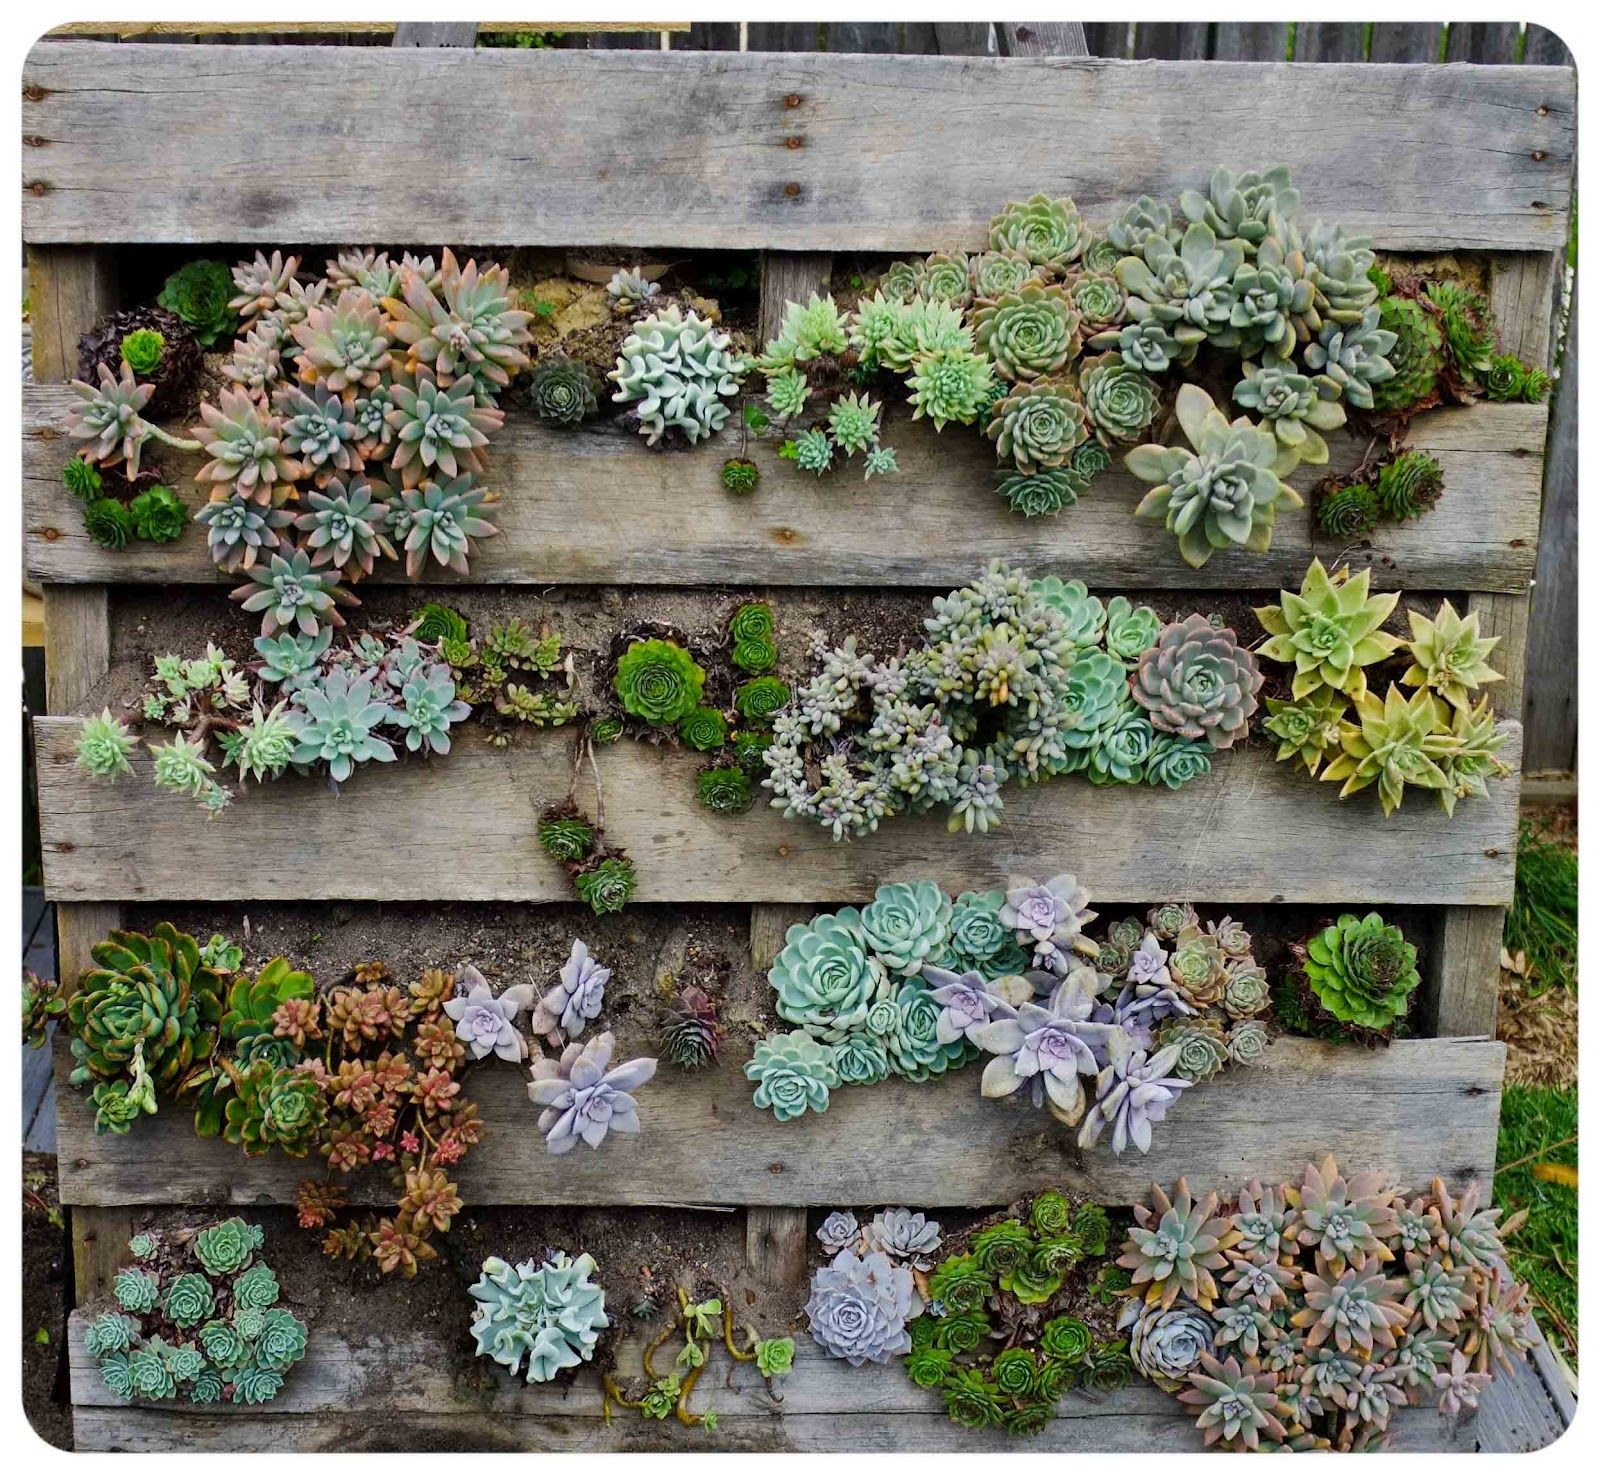 Shabby Chic Patio | Combination On Shabby Chic Patio Wall Garden Diy For  Small Garden .